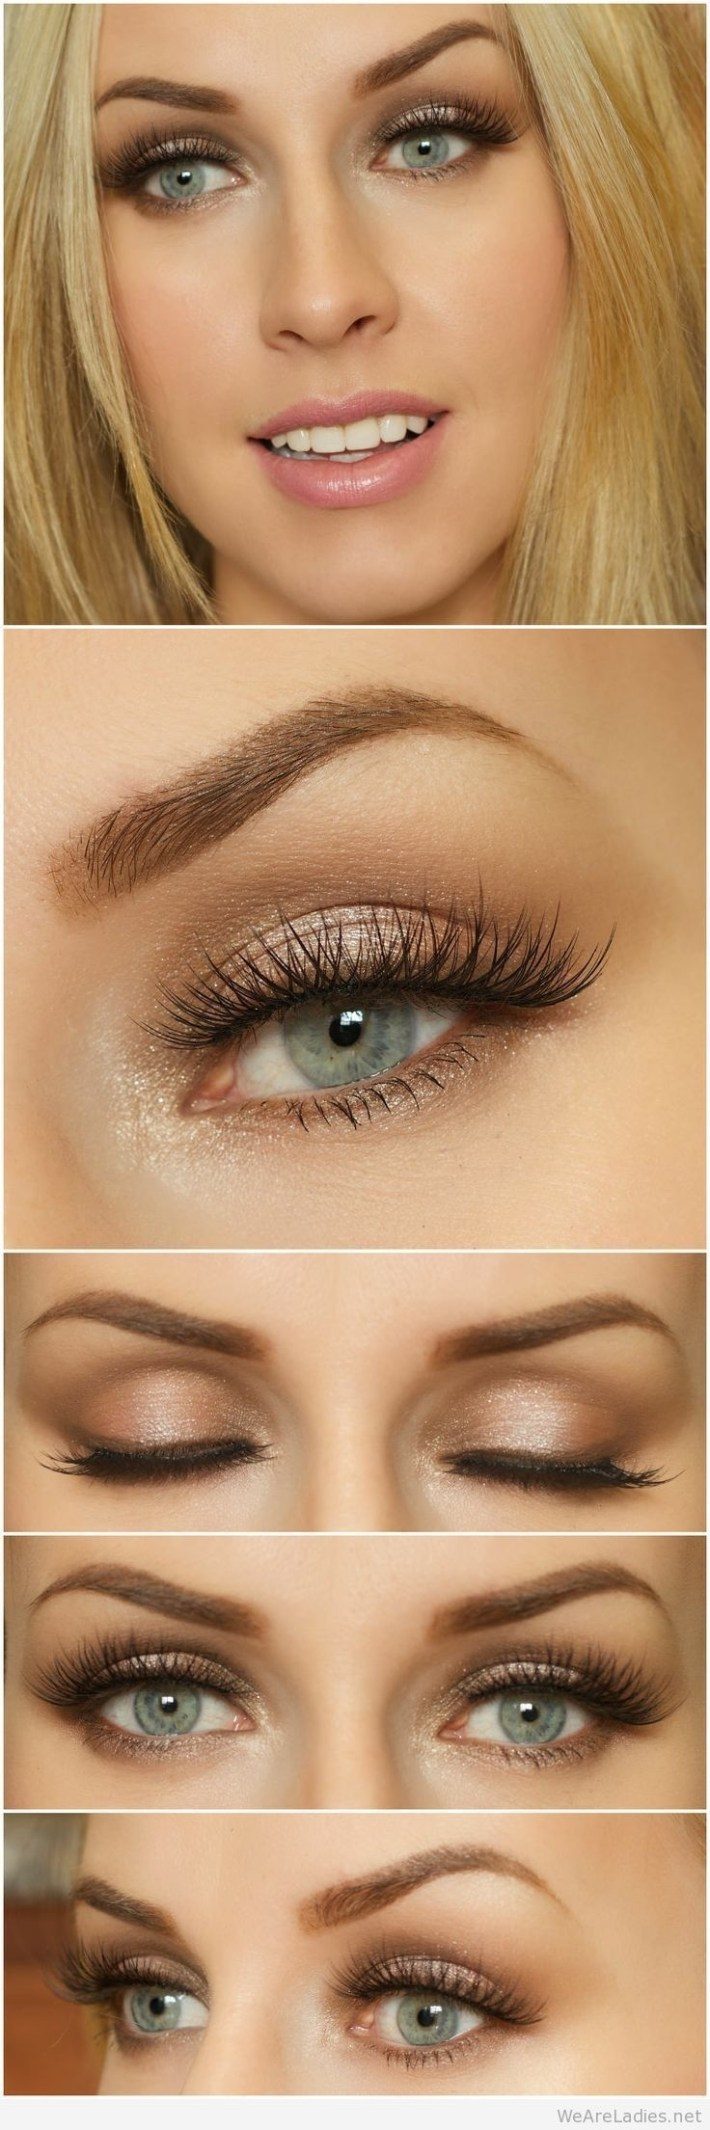 what color eyeshadow looks best with blue eyes and blonde